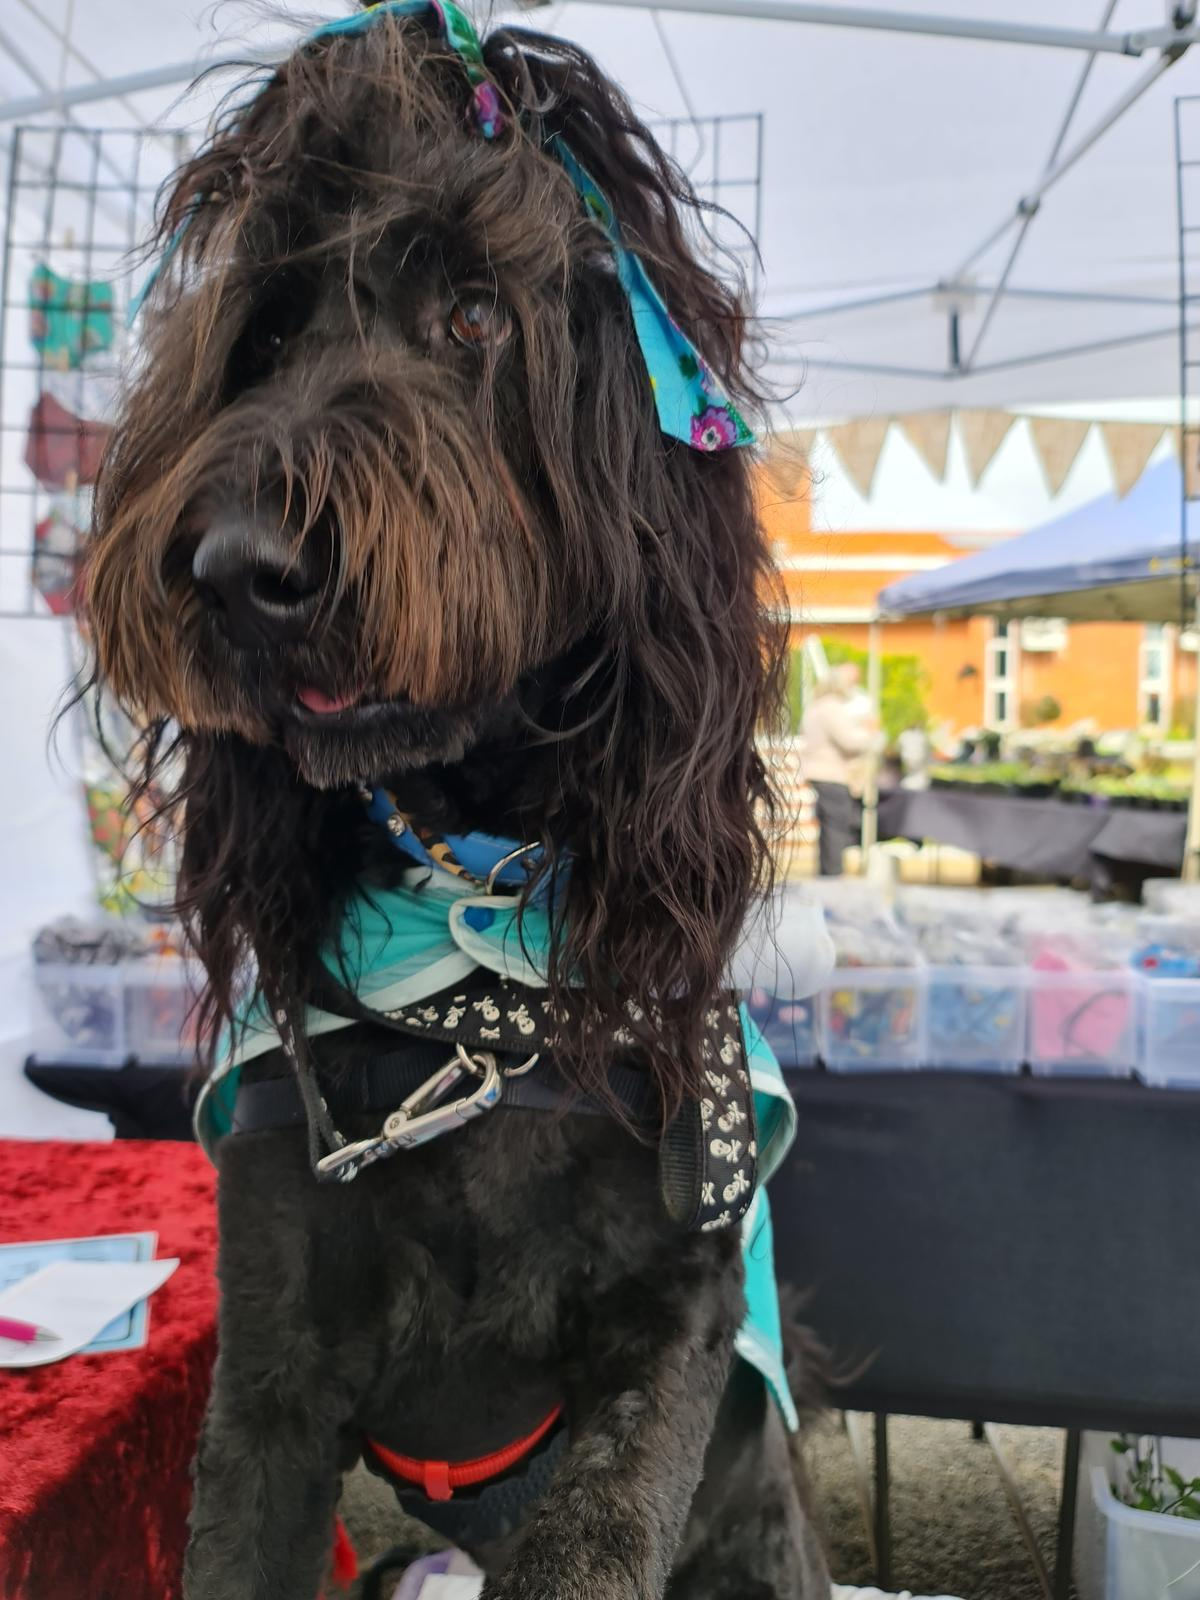 Willow, my Groodle Mascot - Only joins at pet friendly markets